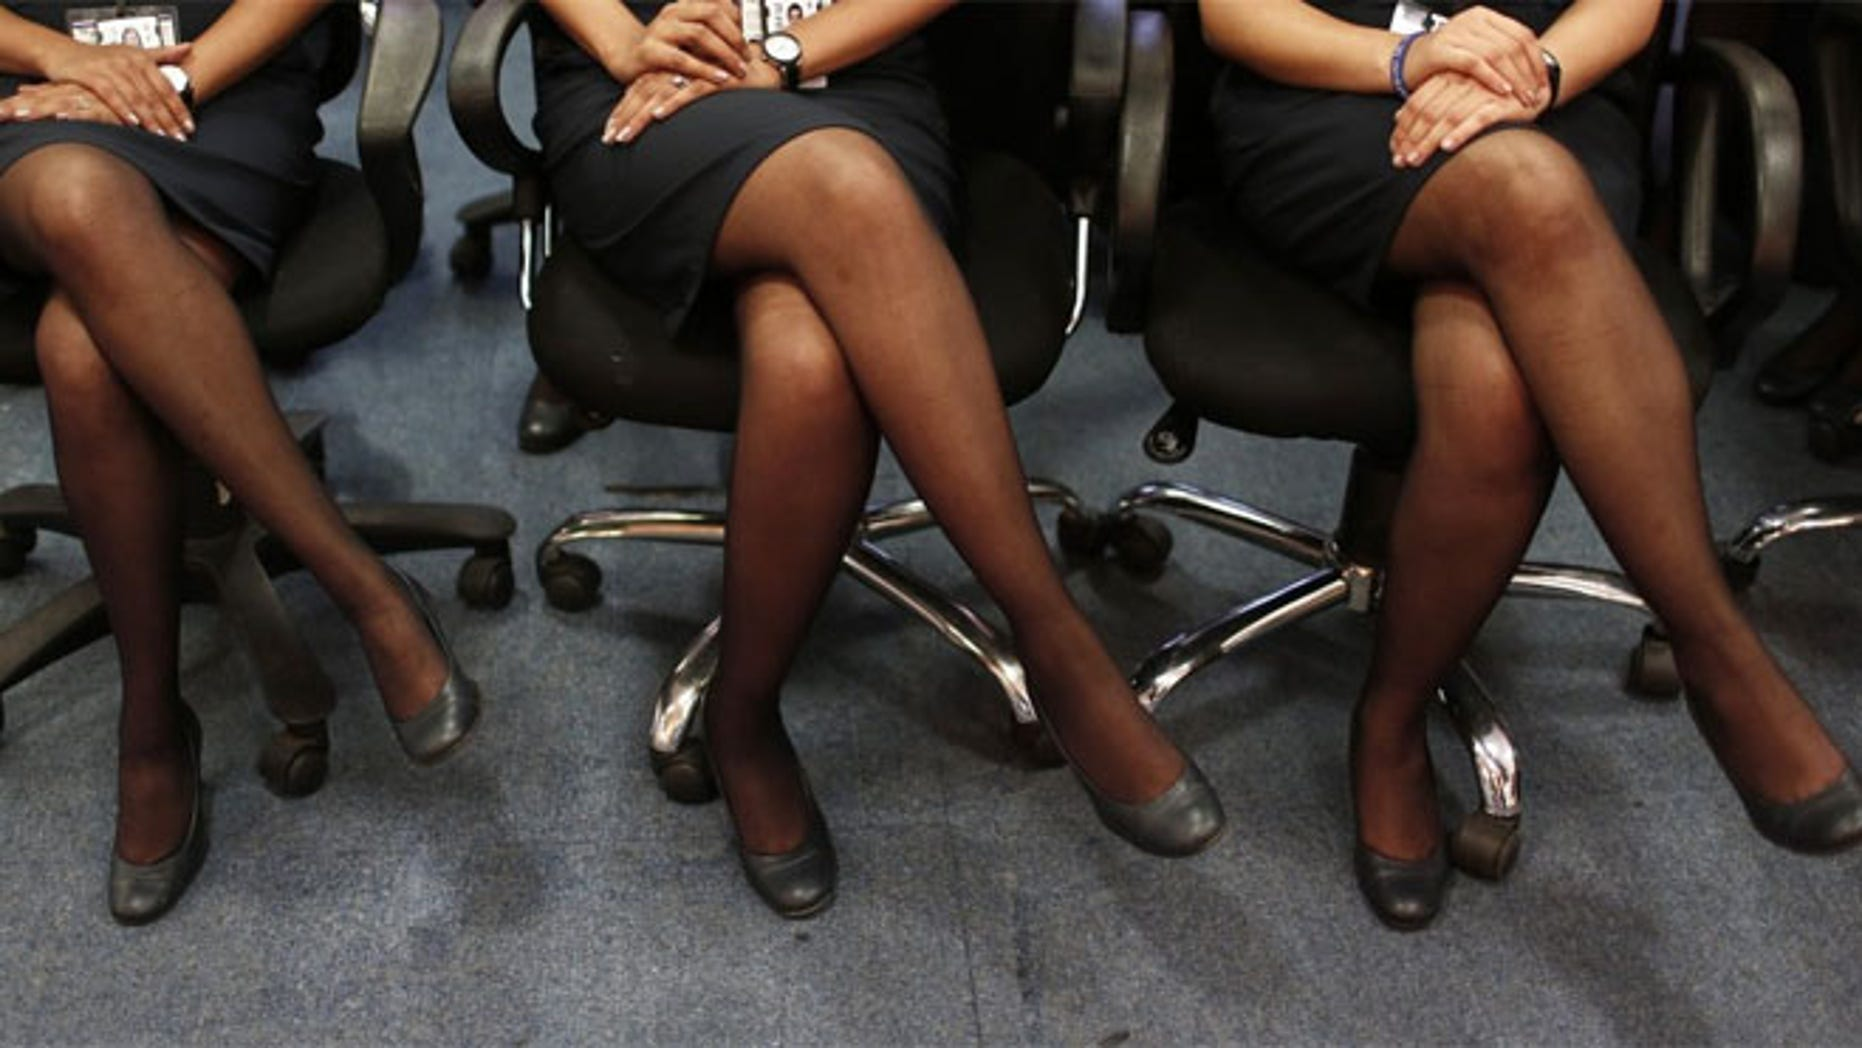 An email sent to employees last week revealed the new protocol that  requires them to wear